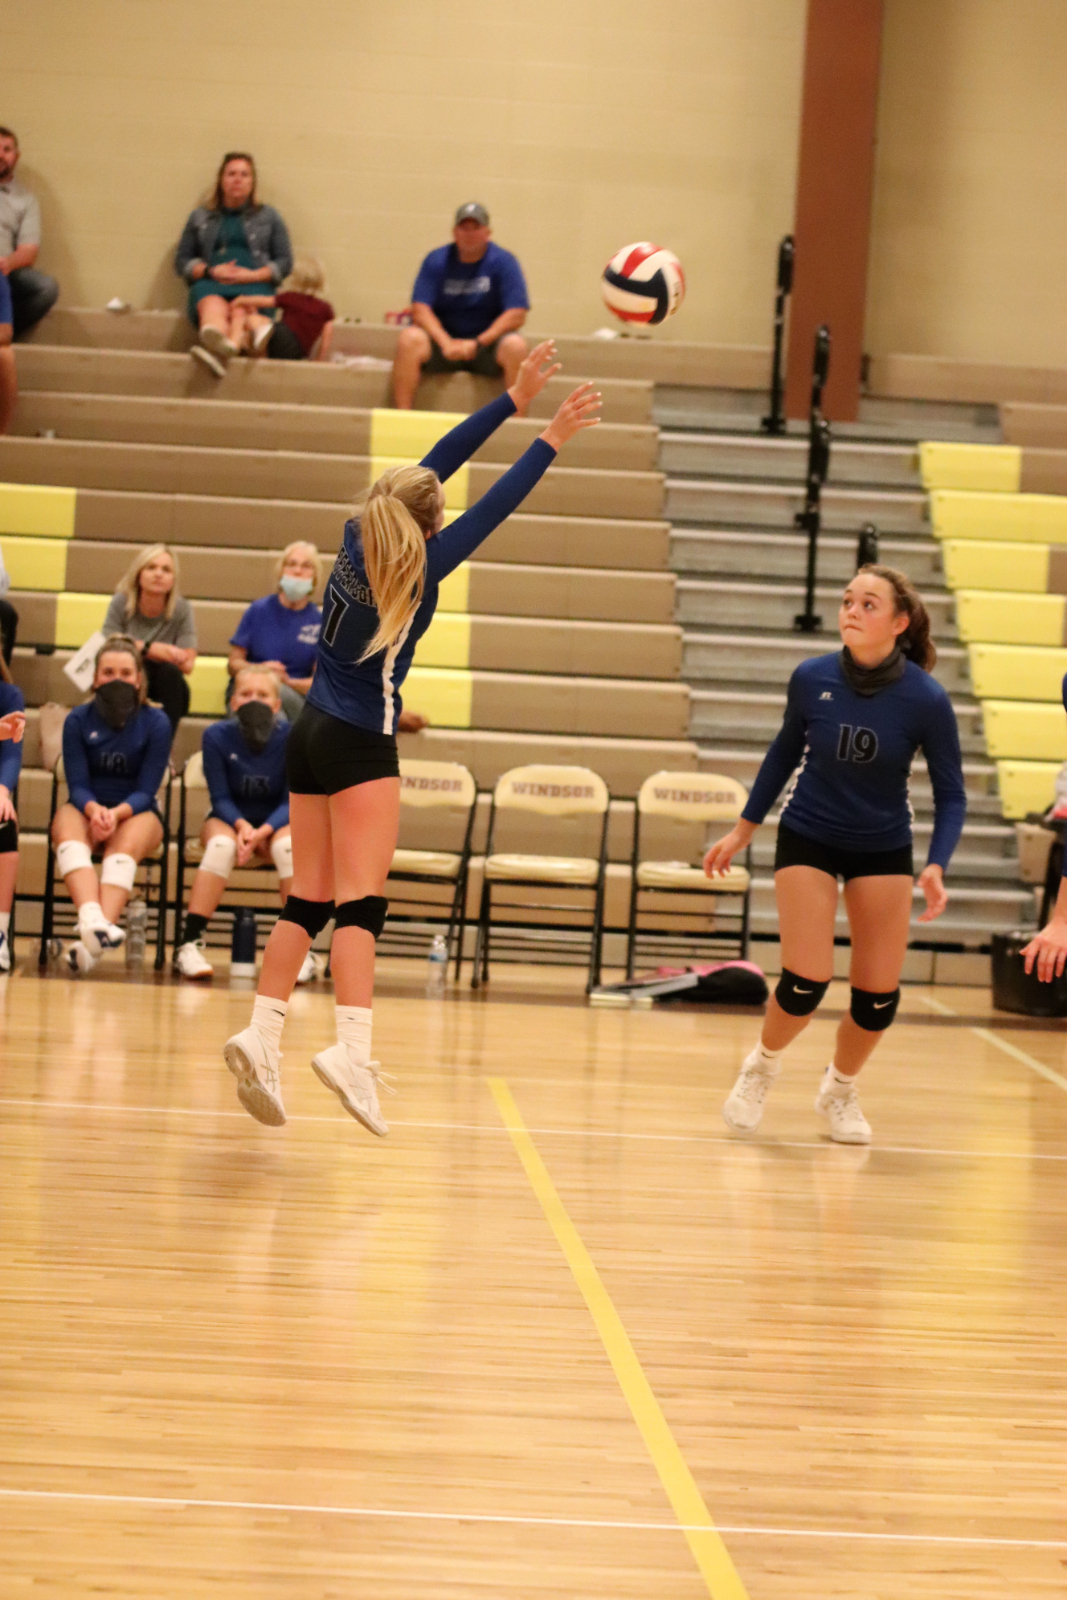 8Volleyball vs Windsor 9/18/20